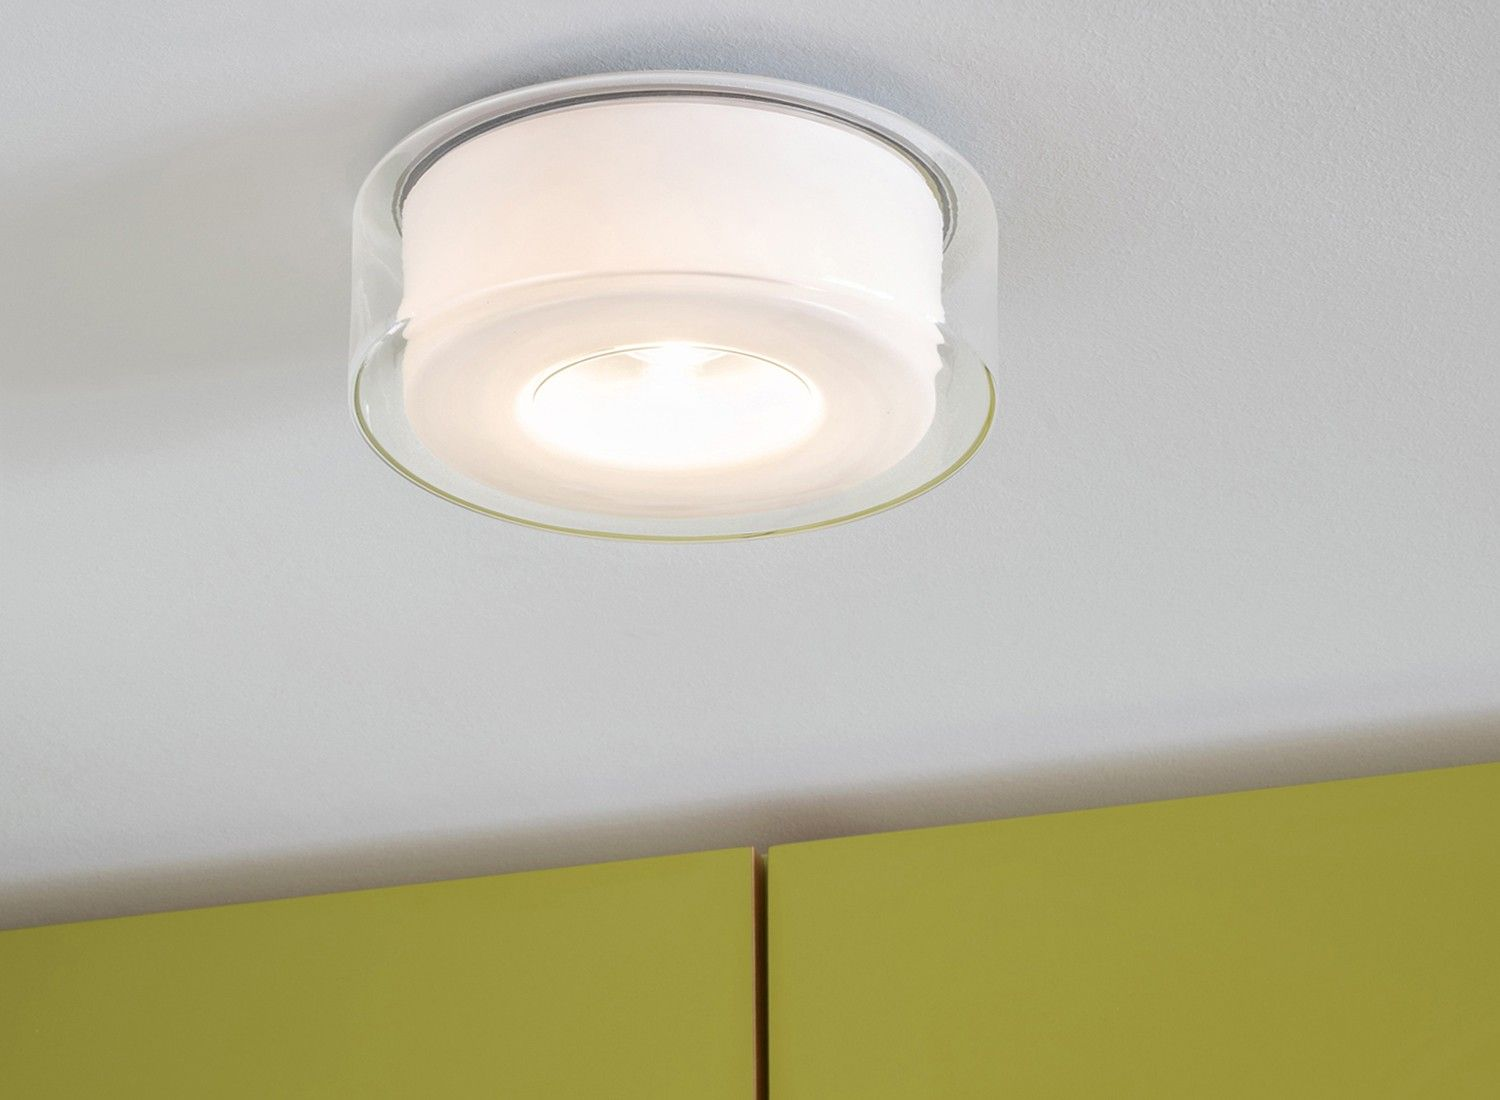 Serien Lighting Curling Ceiling M klar/ zylindrisch opal | Lighting ...